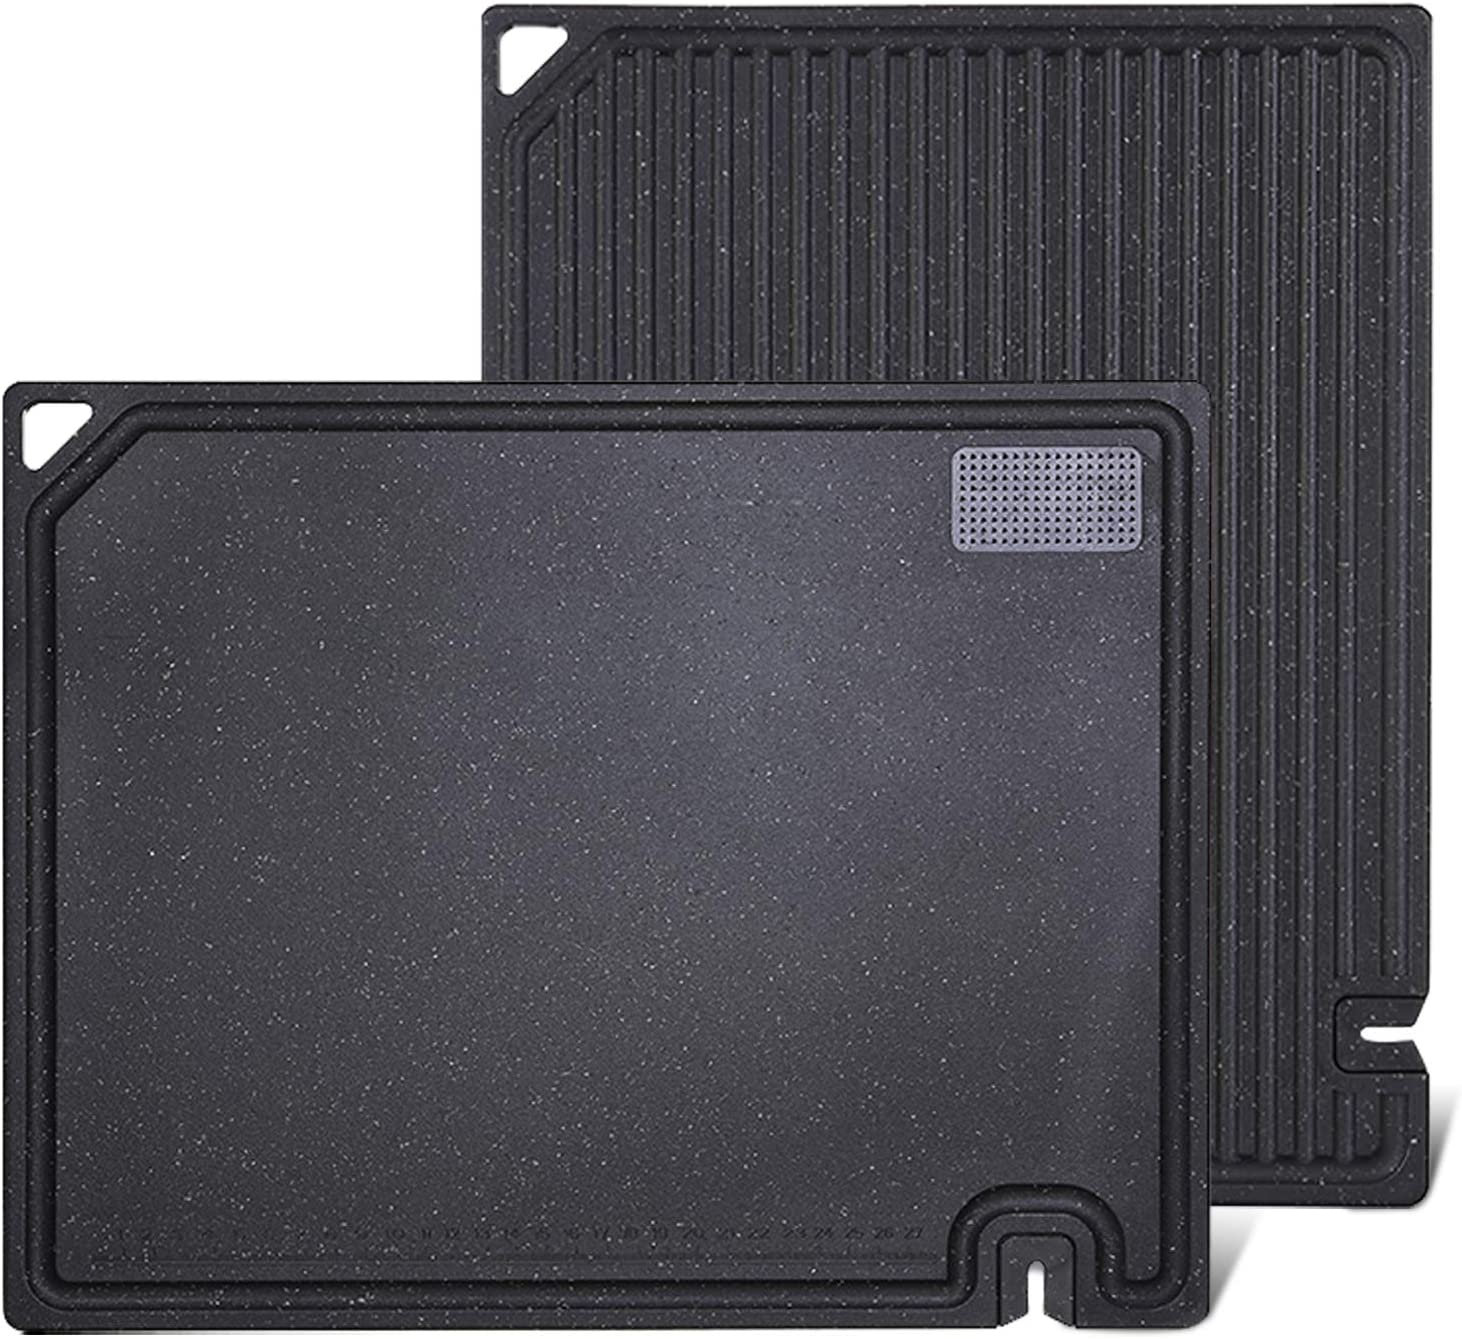 Reservation Max 60% OFF Plastic Cutting Board for Kitchen 16 X Large 13 Durable Re inch